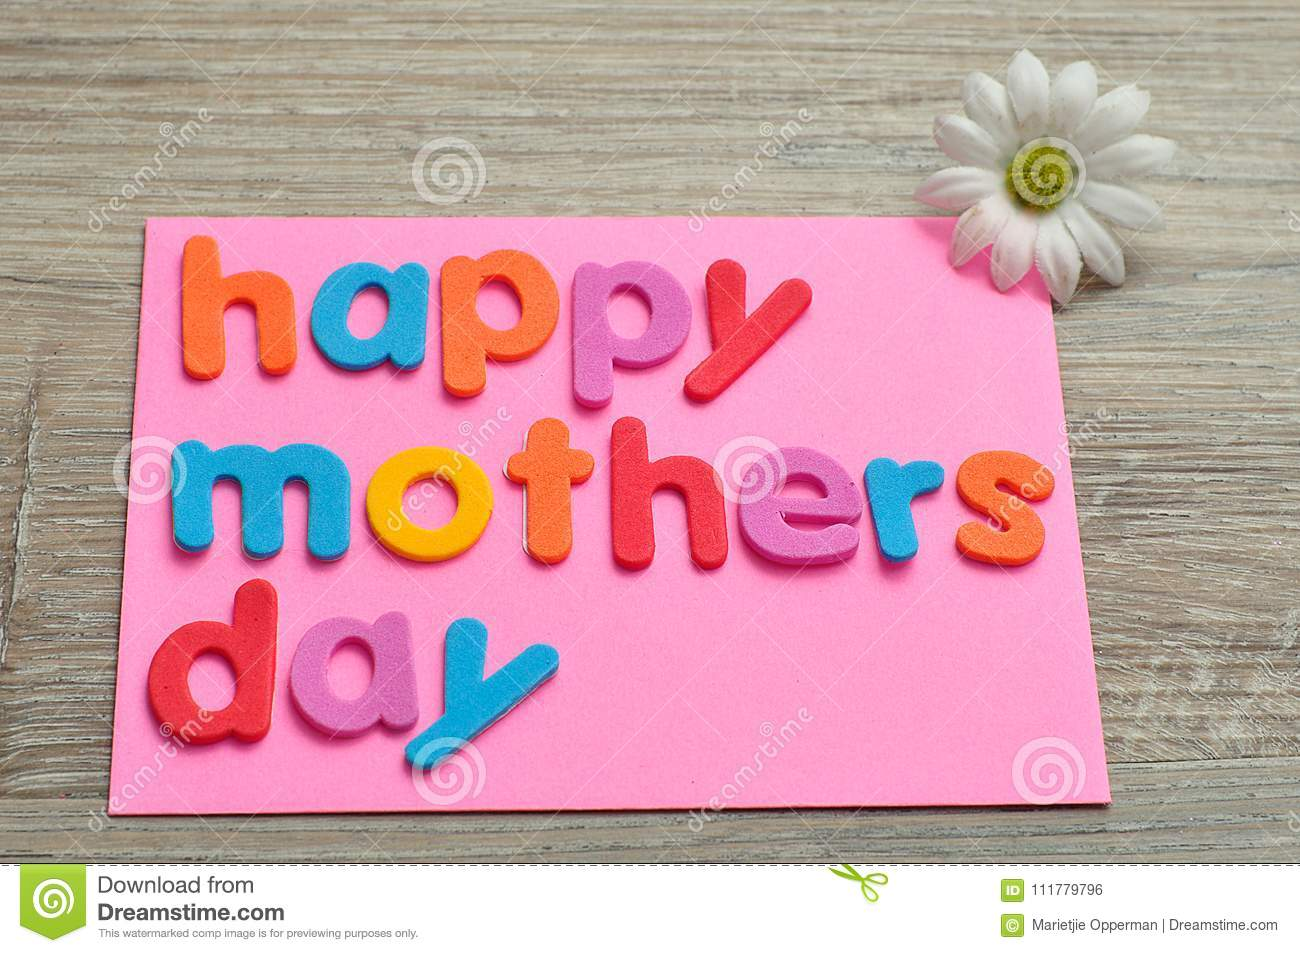 Happy mothers day on a pink note with a white daisy